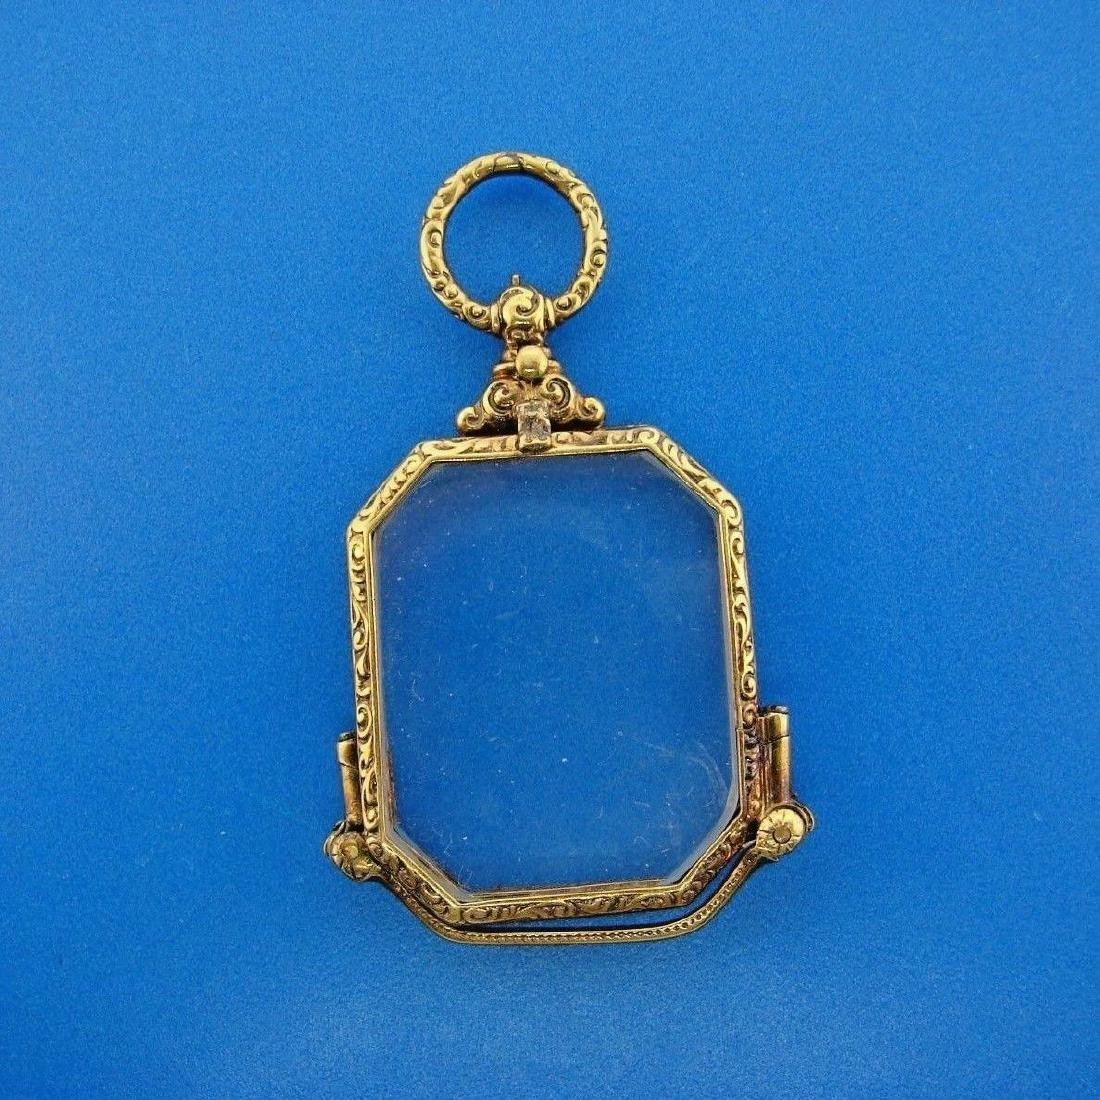 TIMELESS Victorian 14k Yellow Gold Lorgnette Glasses